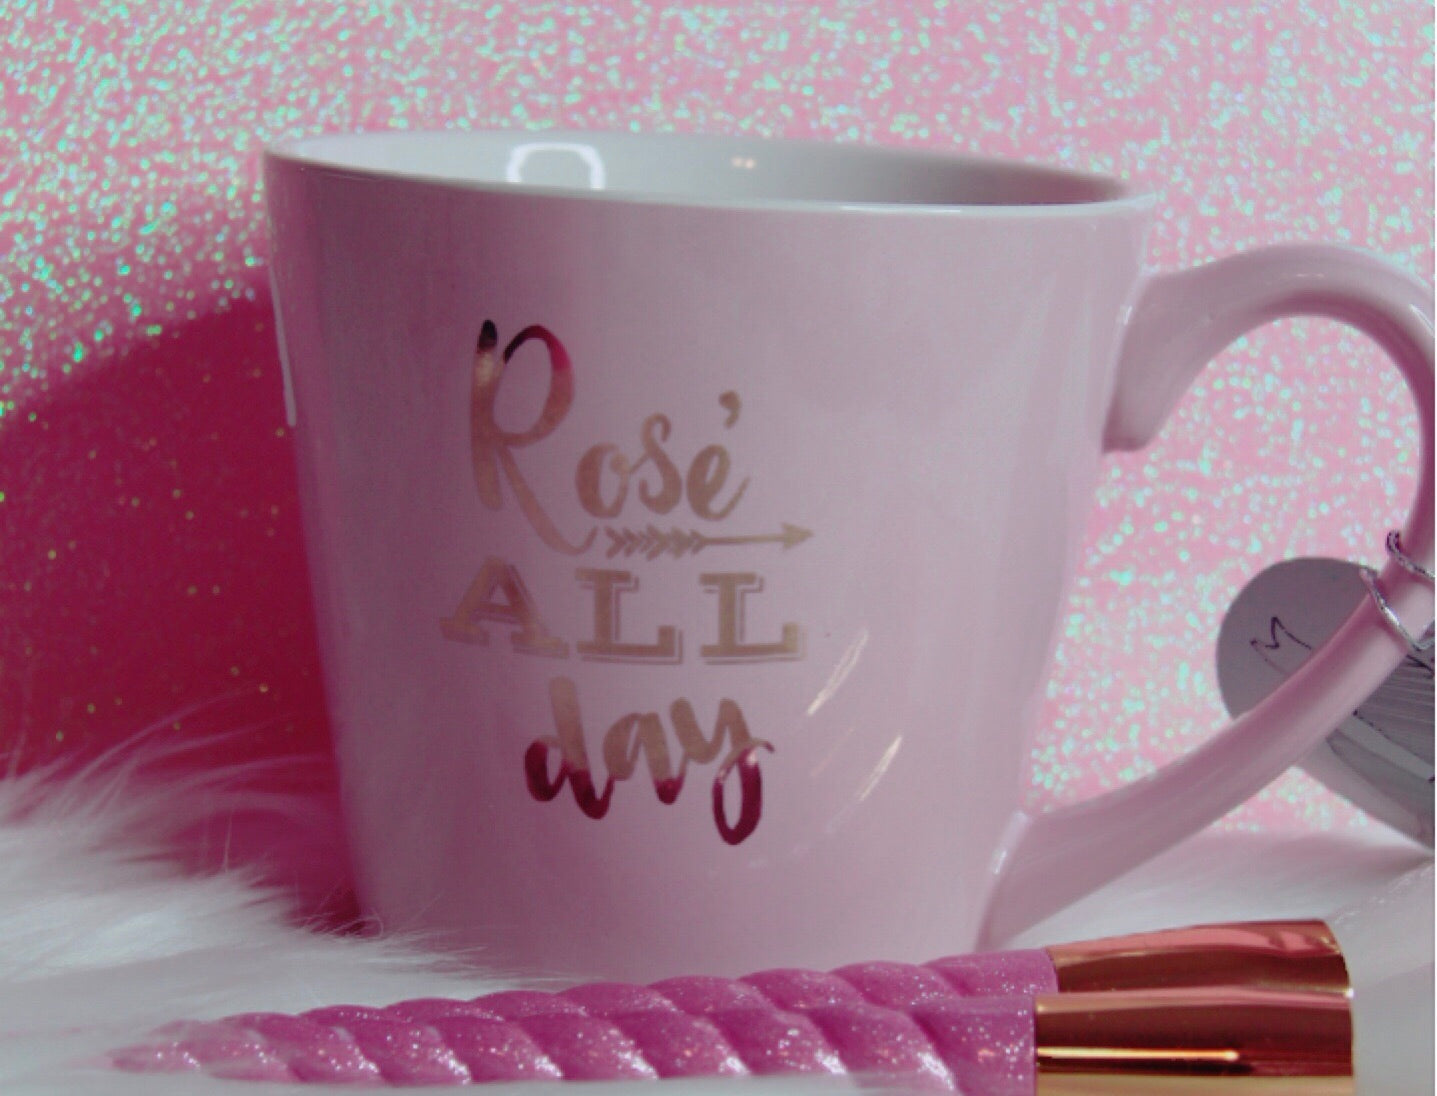 Rose all day light pink mug